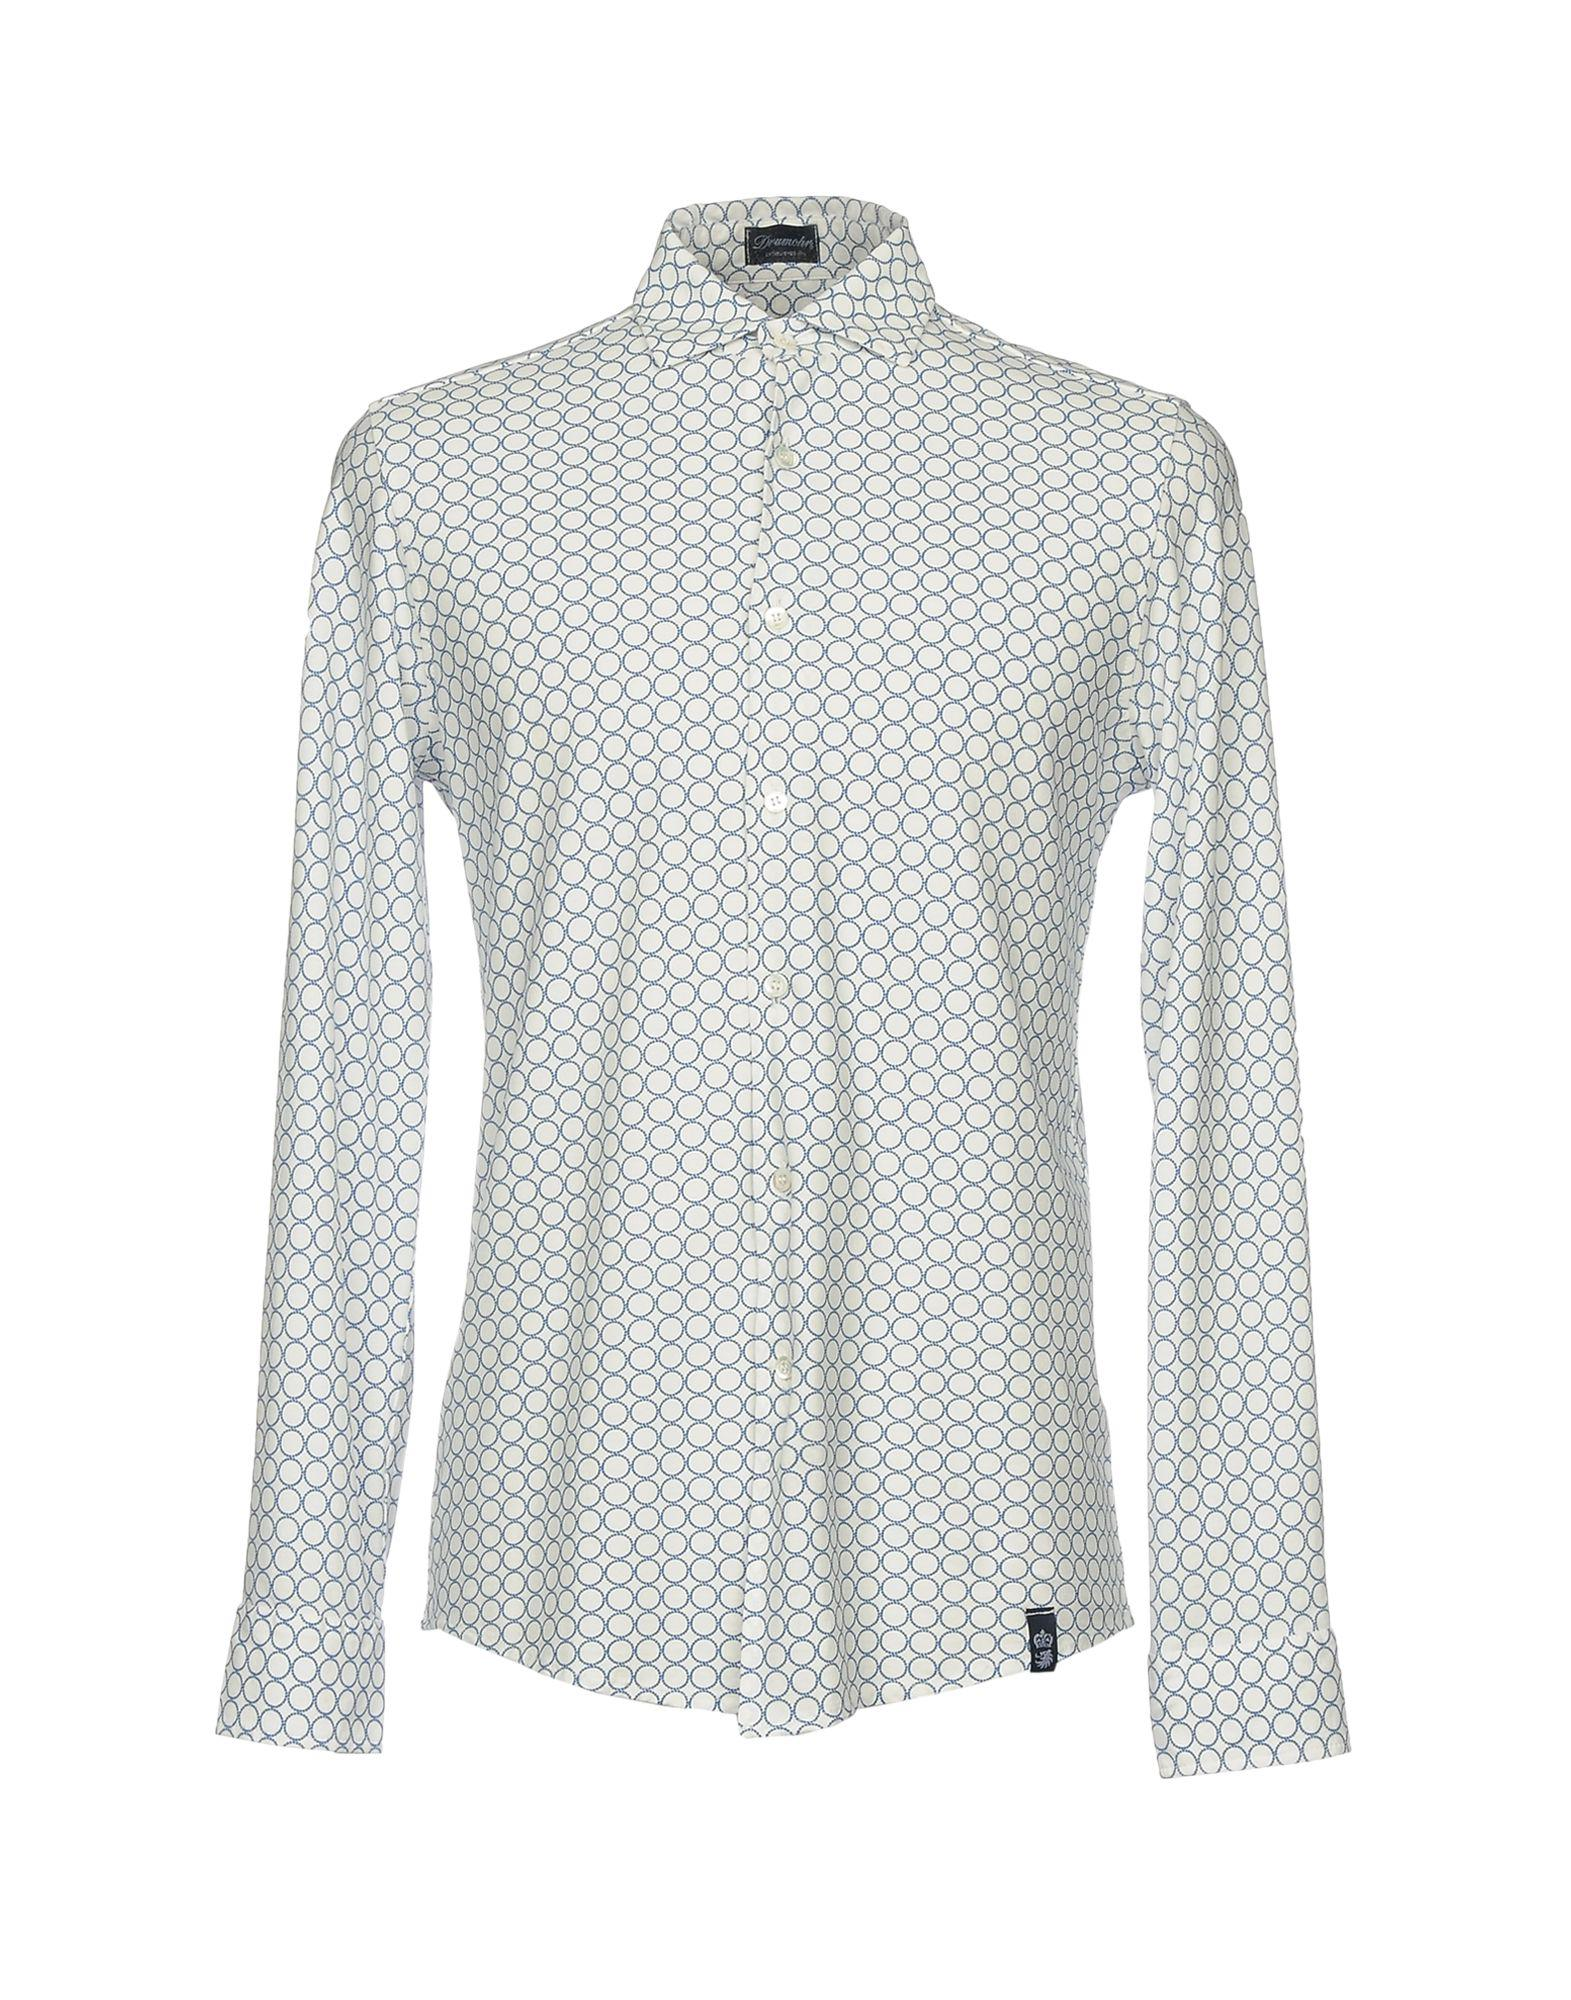 White casual shirt Drumohr Discount Limited Edition Discount Explore Outlet Order Best Cheap Price Latest Collections Cheap Price HWHavBwefs